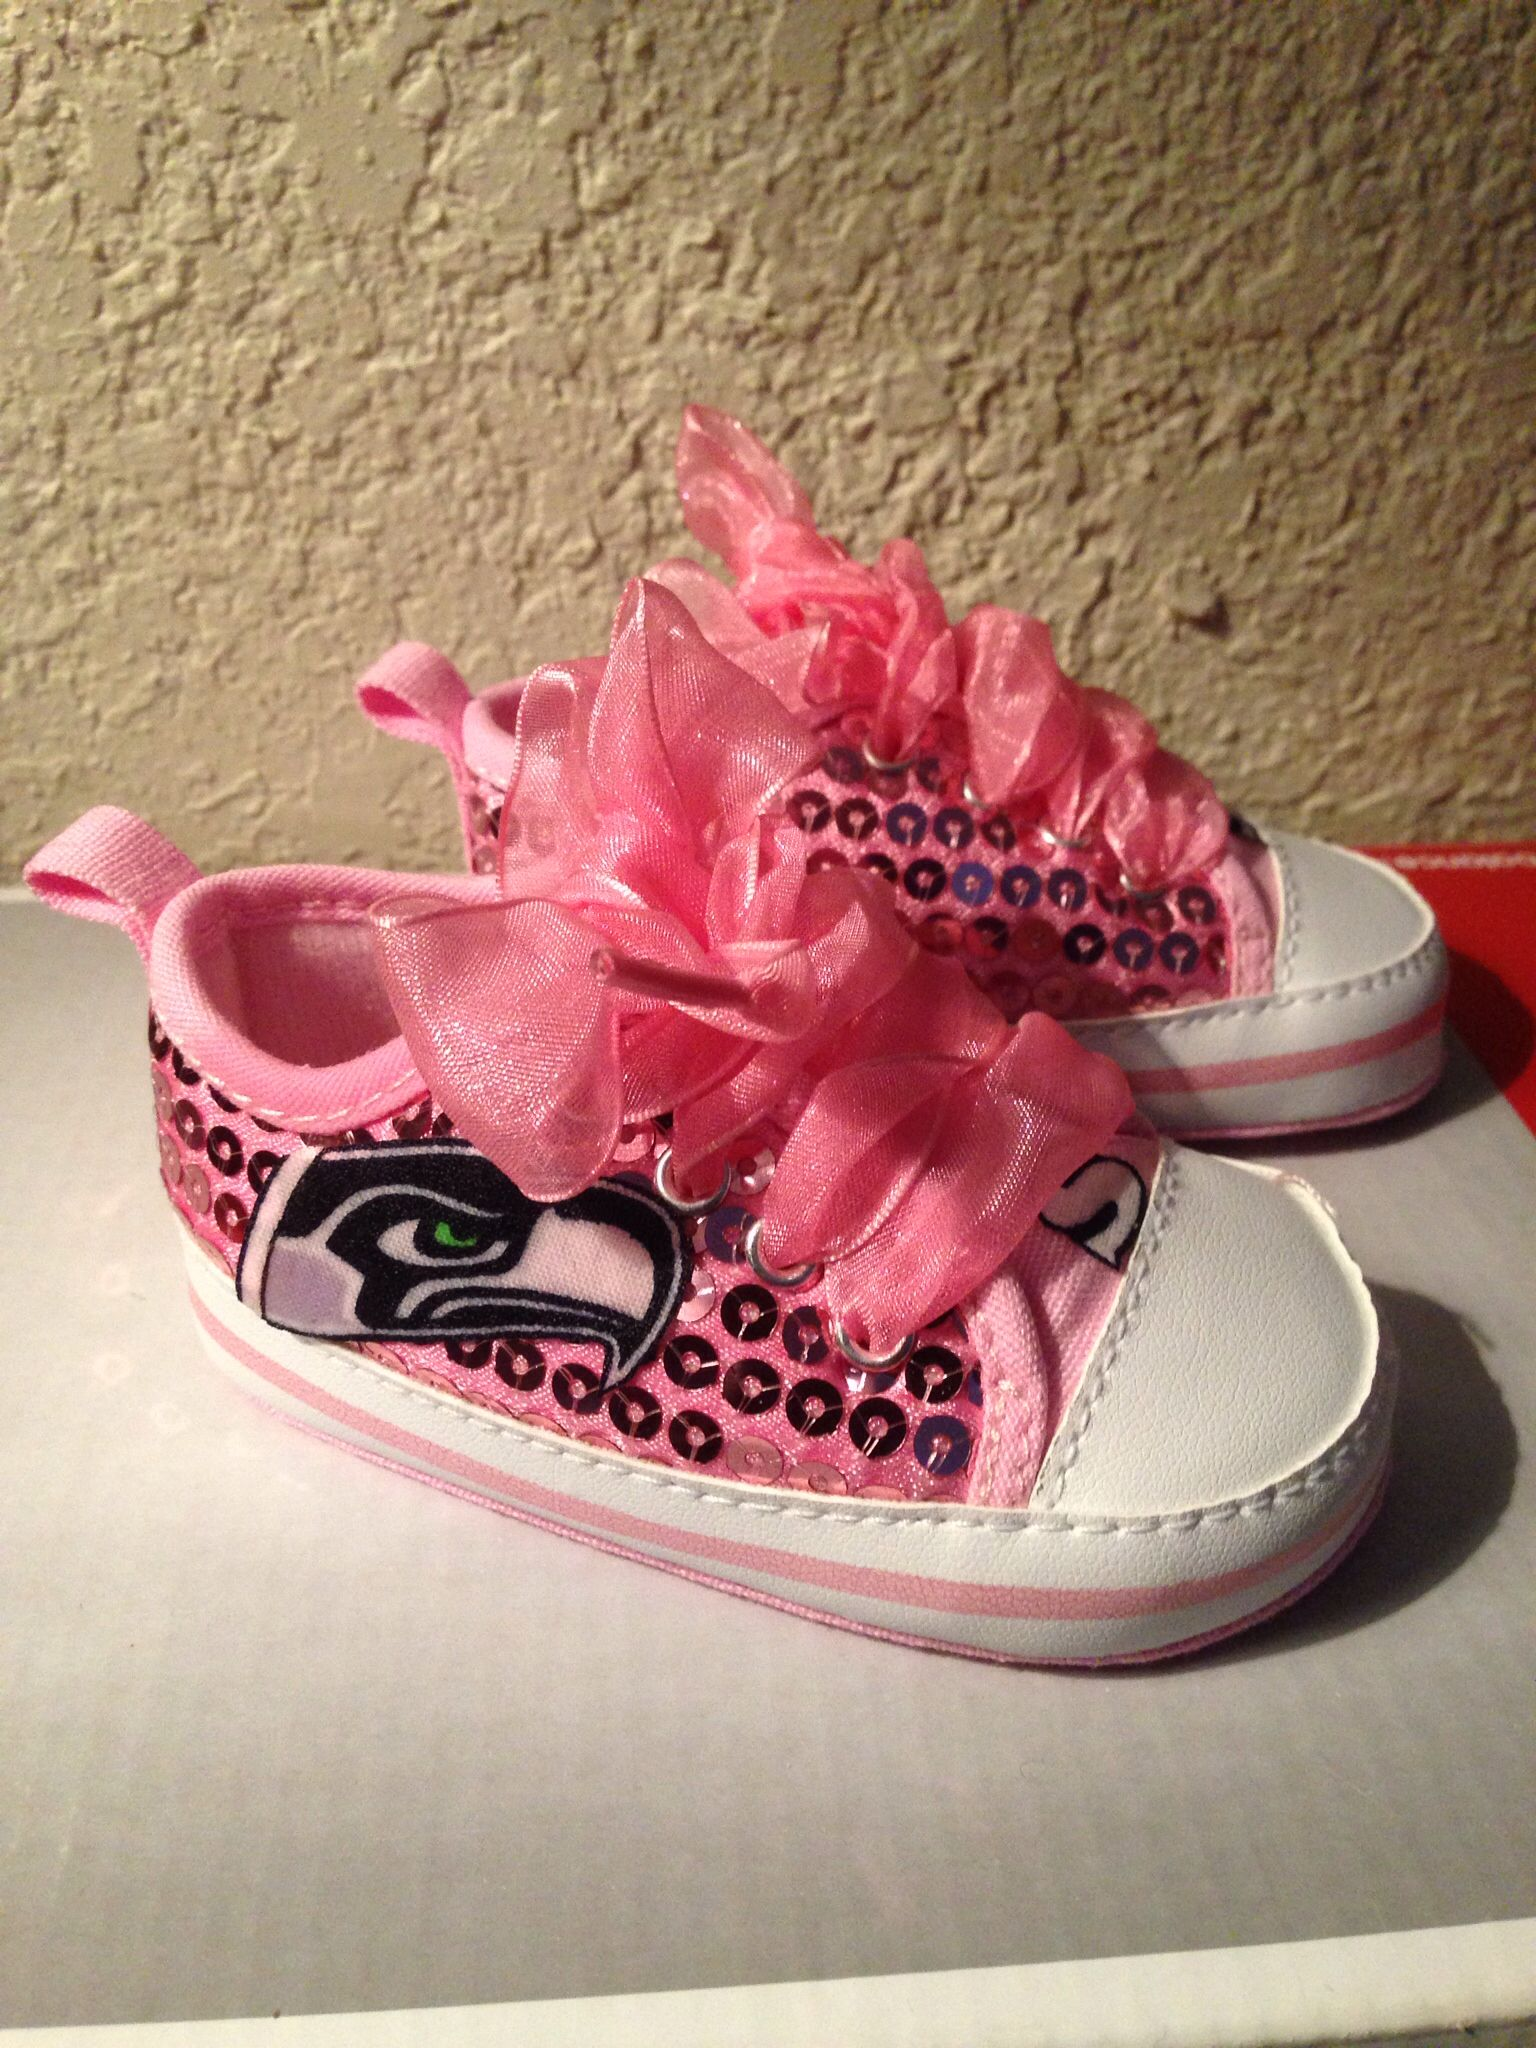 Loley pops newest creation pretty pink seattle seahawks baby shoes